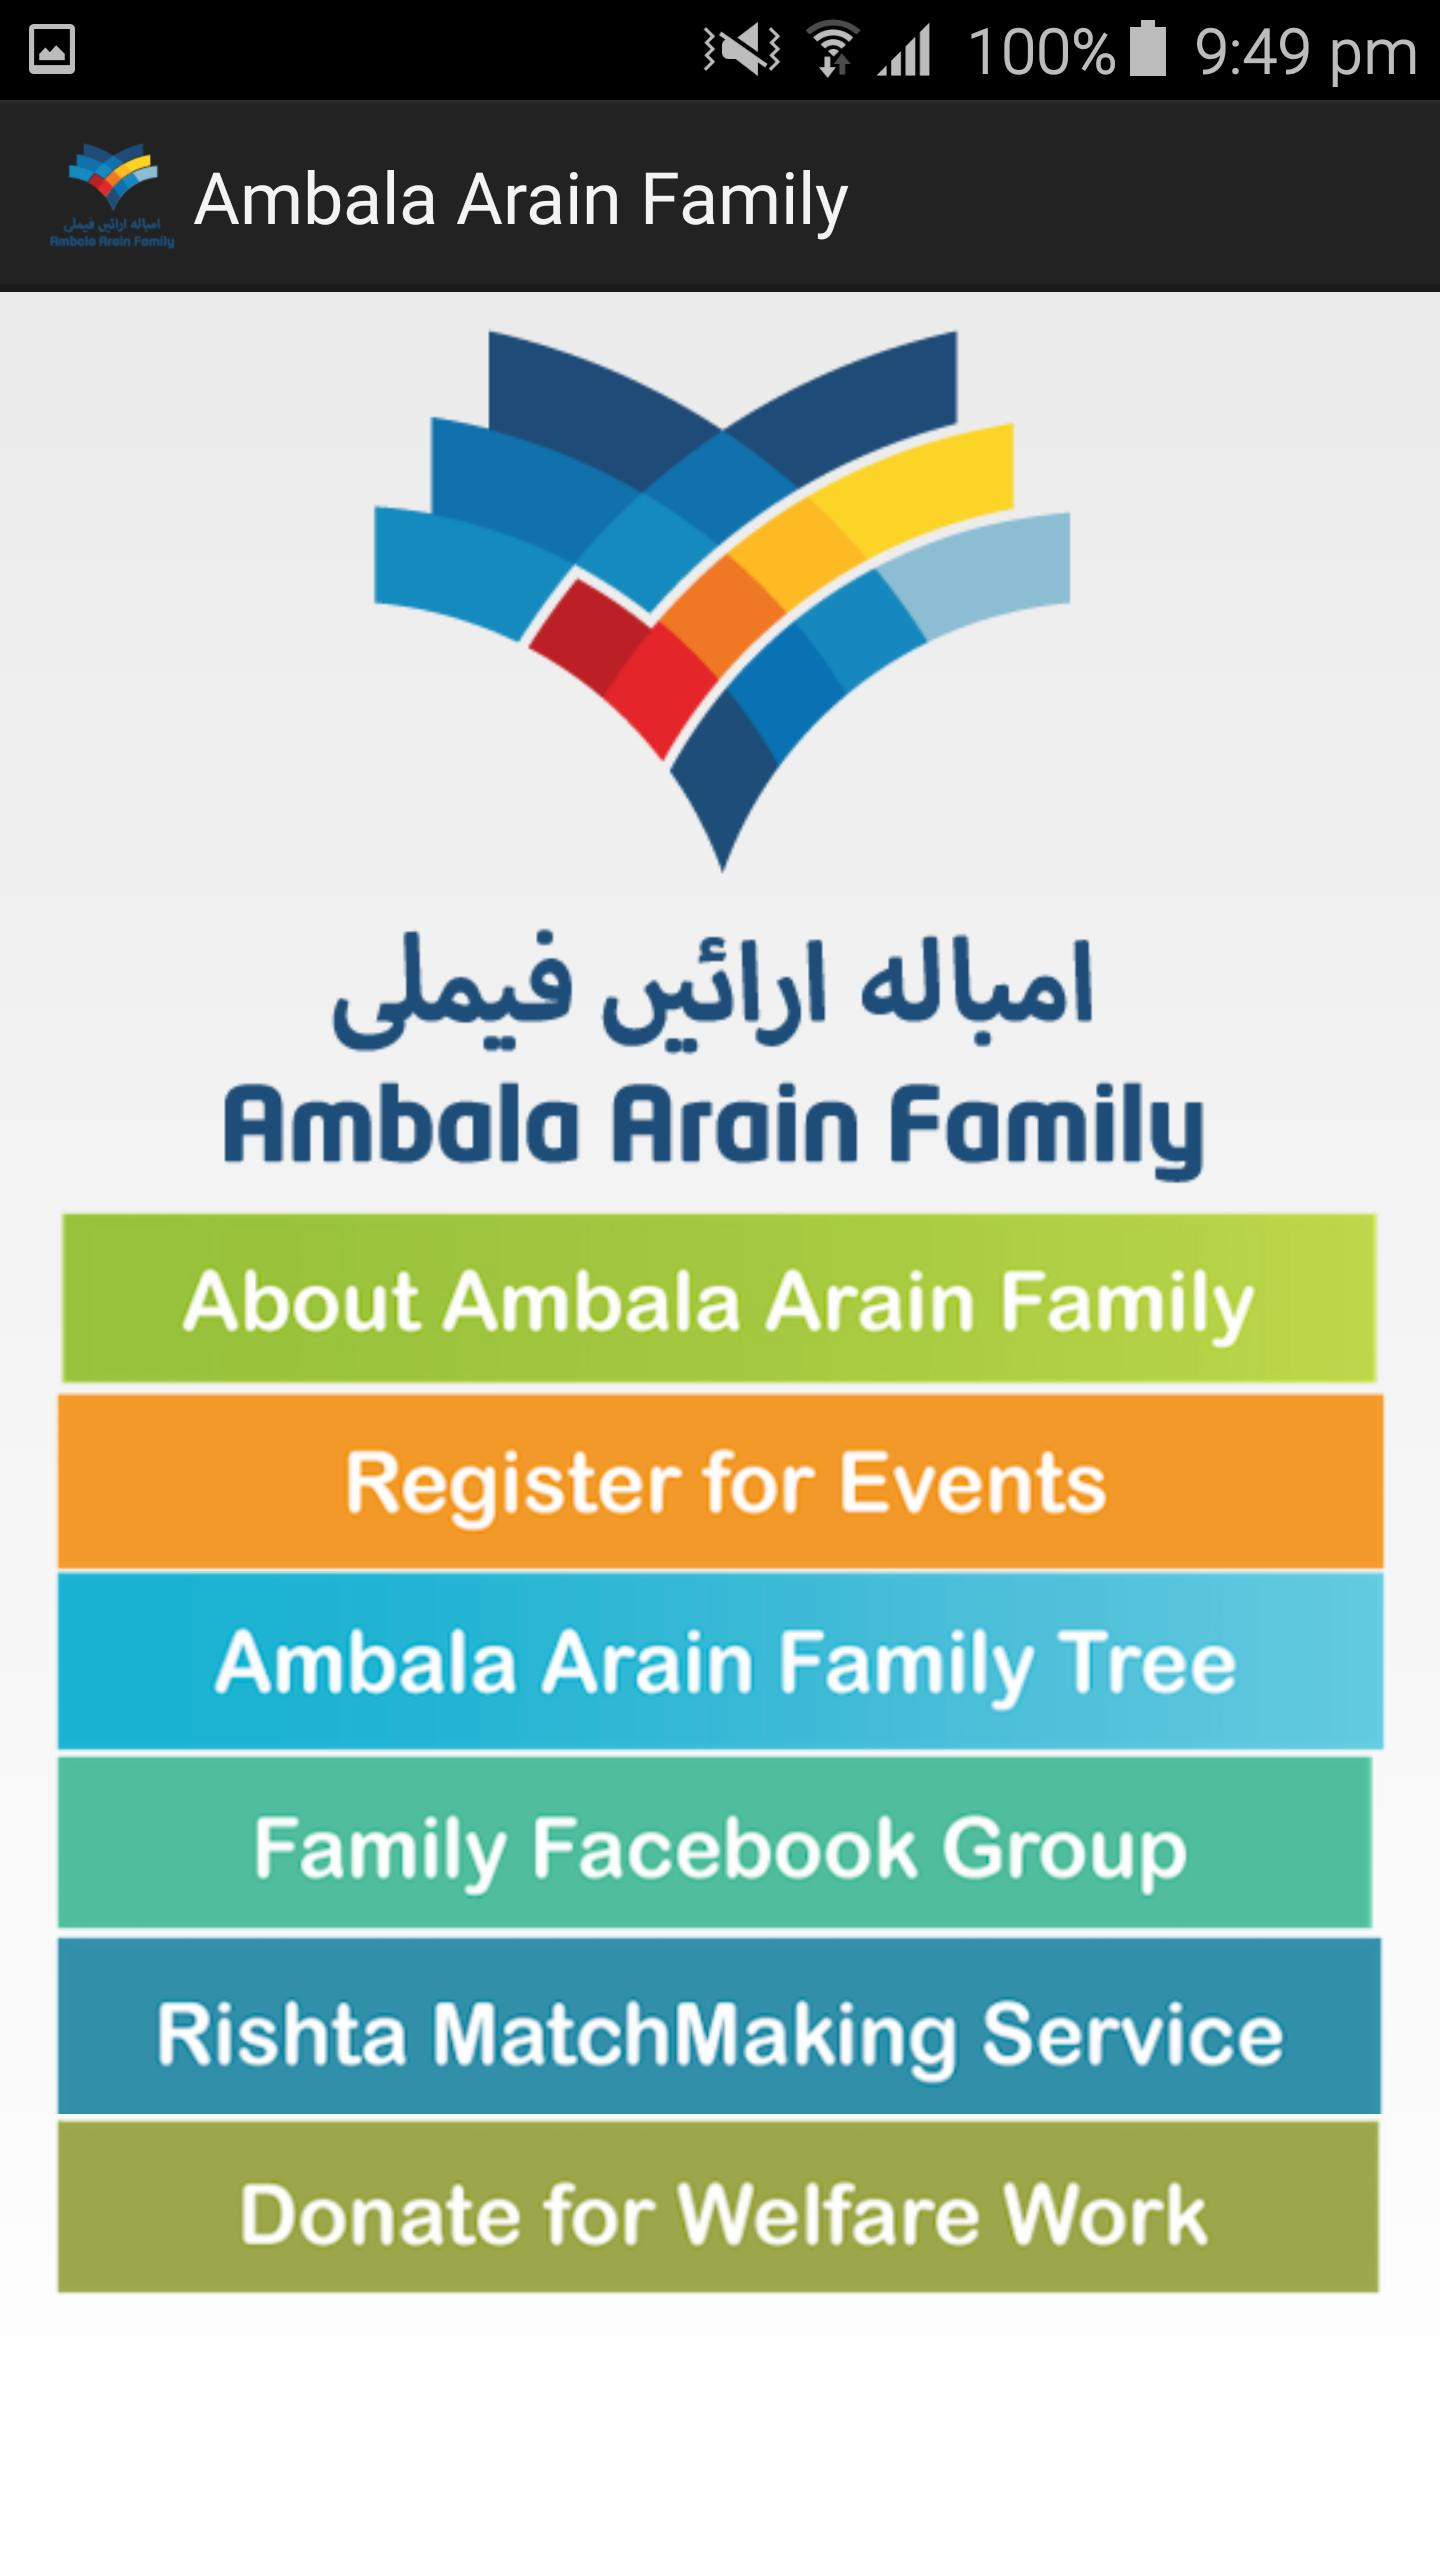 Ambala Arain Family for Android - APK Download